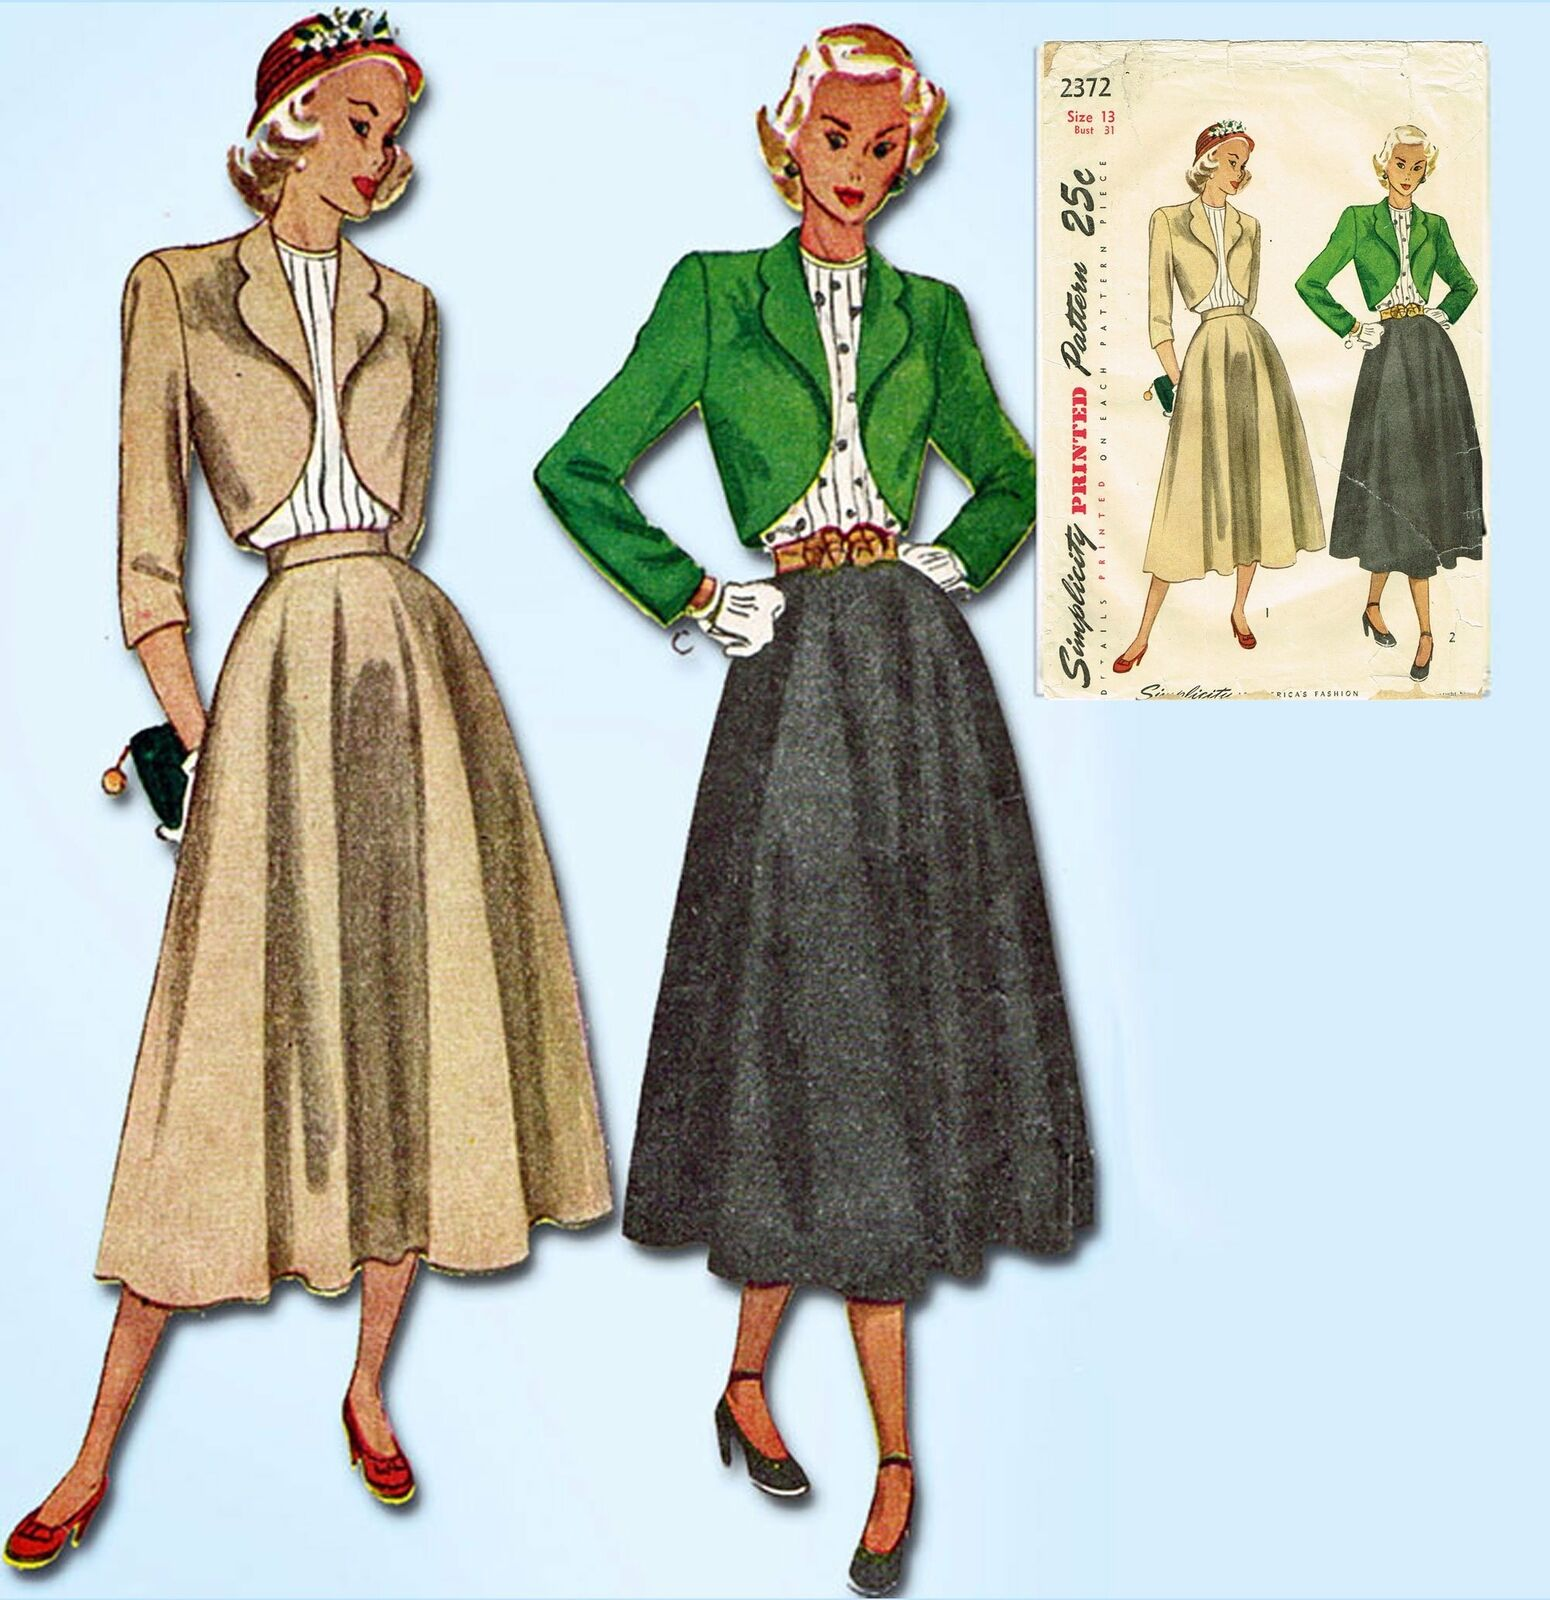 1940s Vintage Simplicity Sewing Pattern 2372 Misses Suit and Tucked Blouse 31B 8